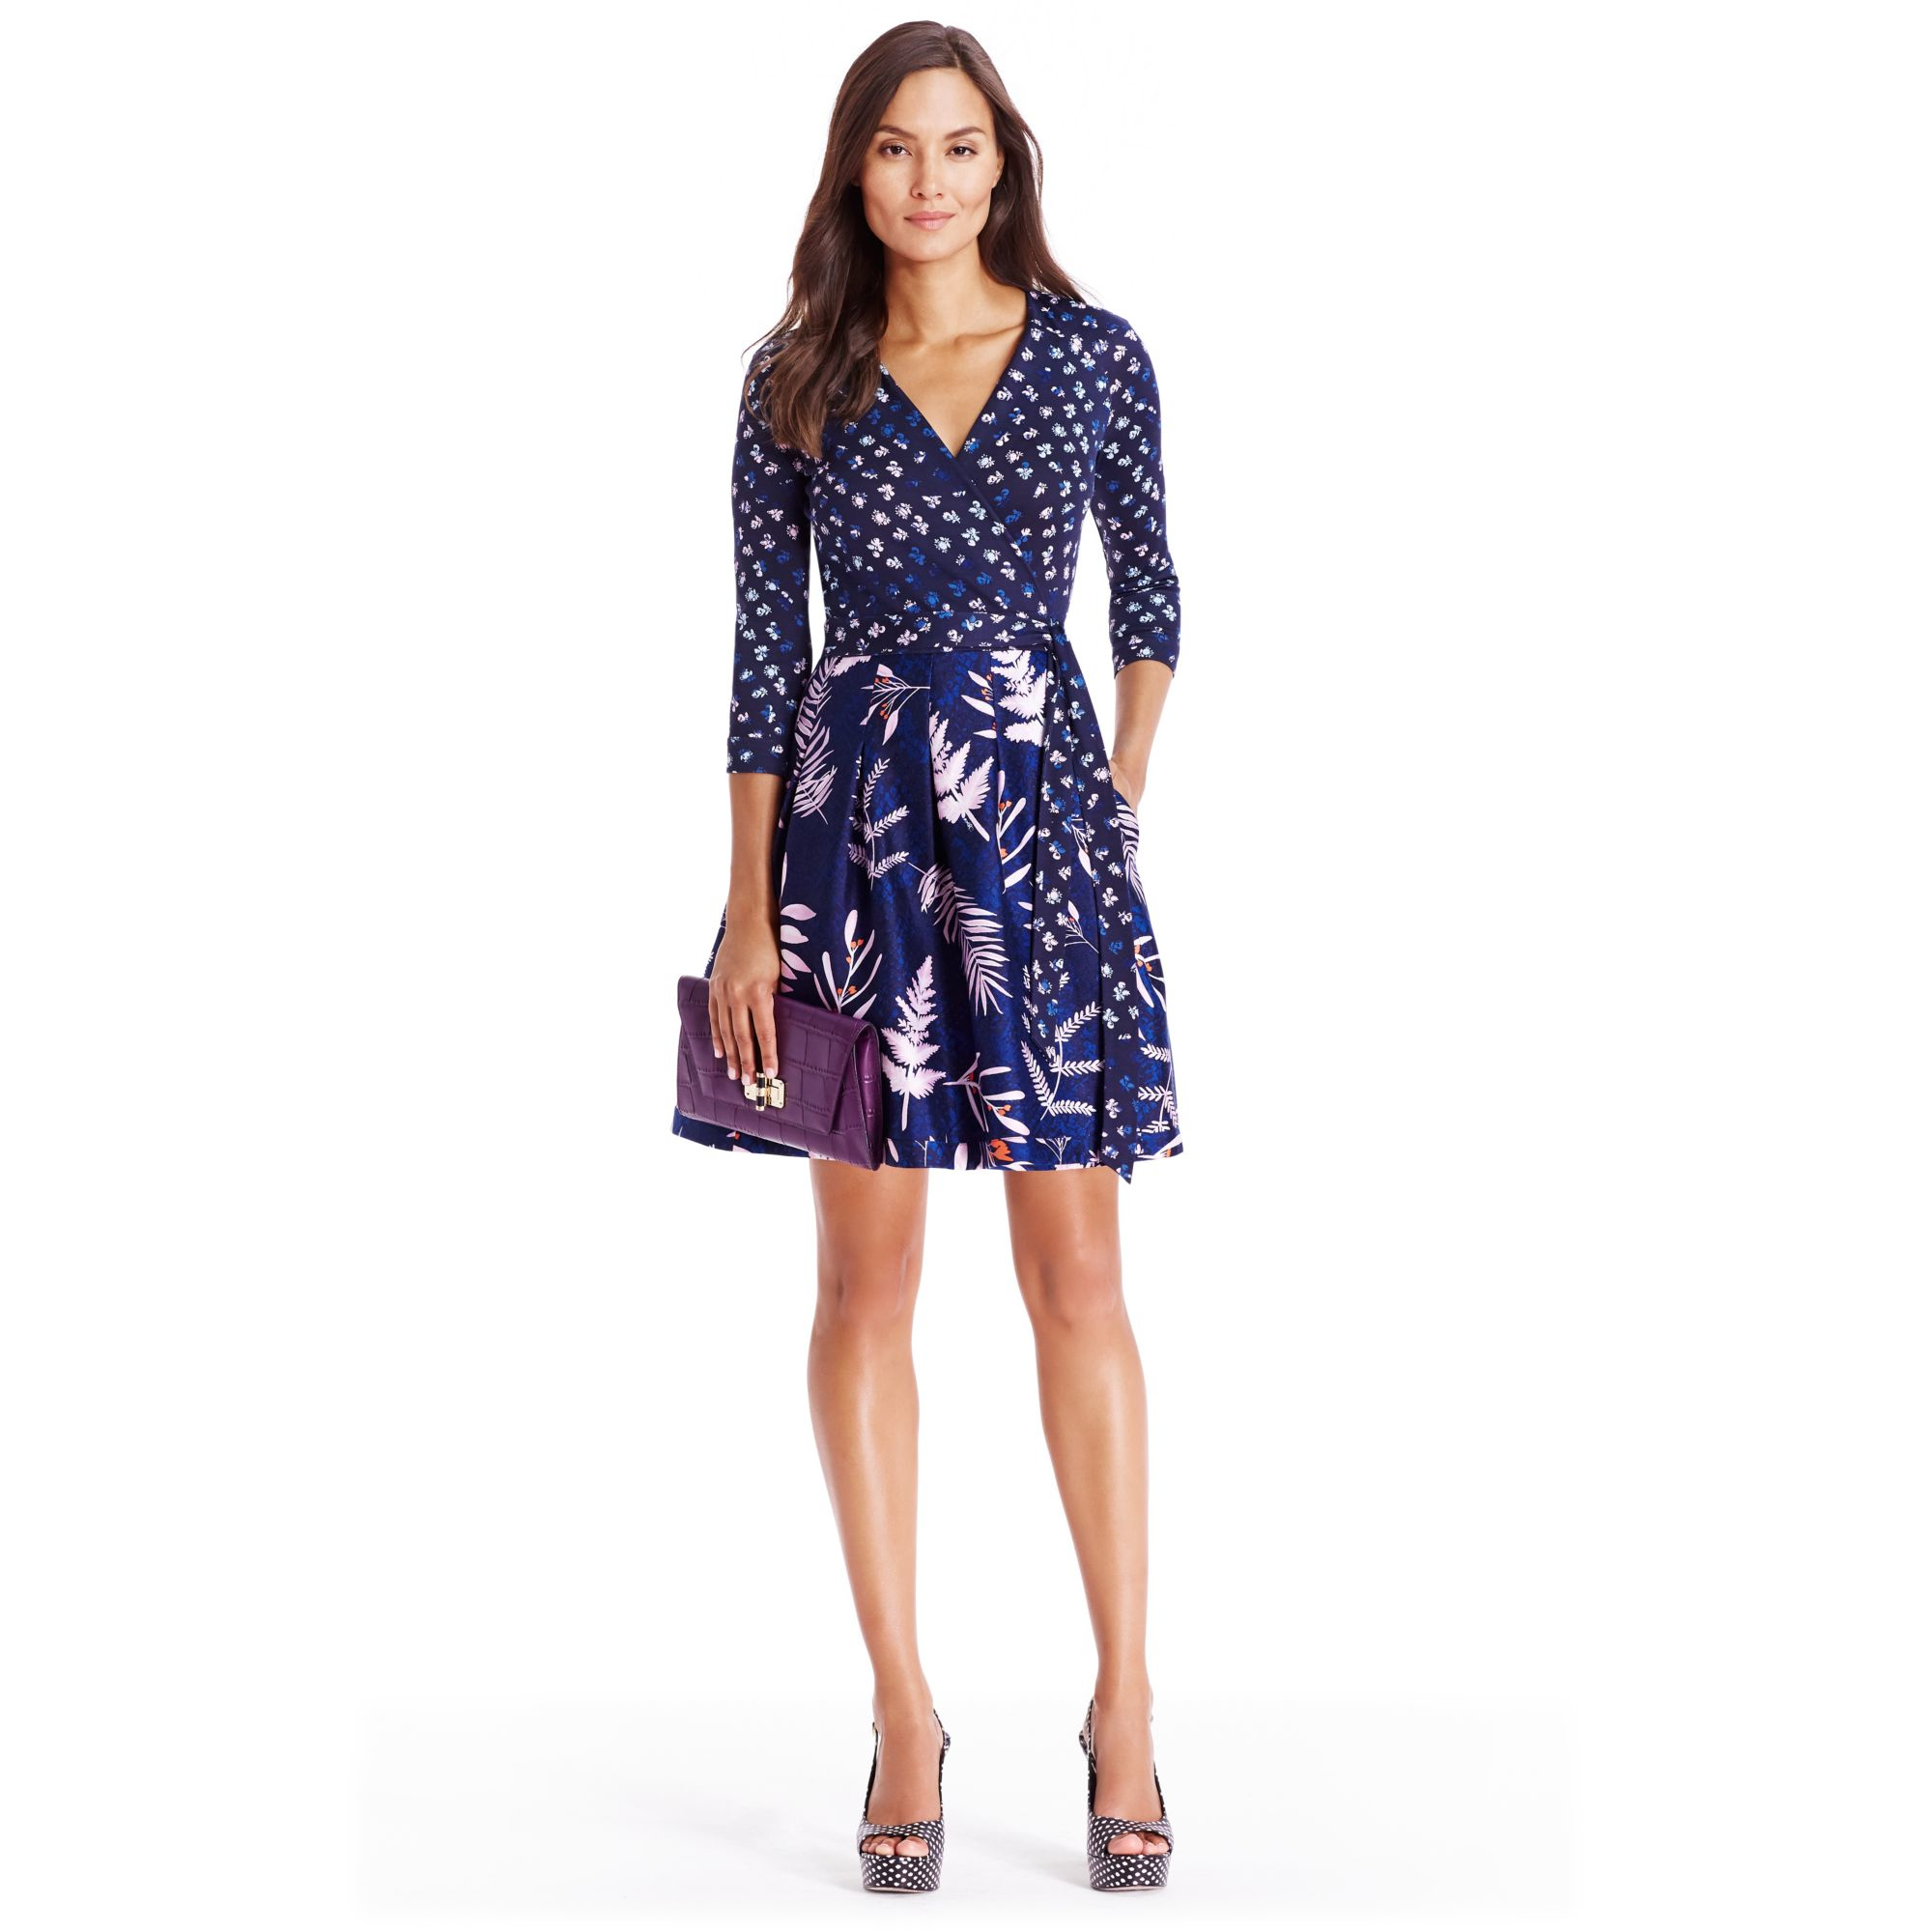 Diane von furstenberg jewel silk jersey wrap dress in blue for Diane von furstenberg clothes